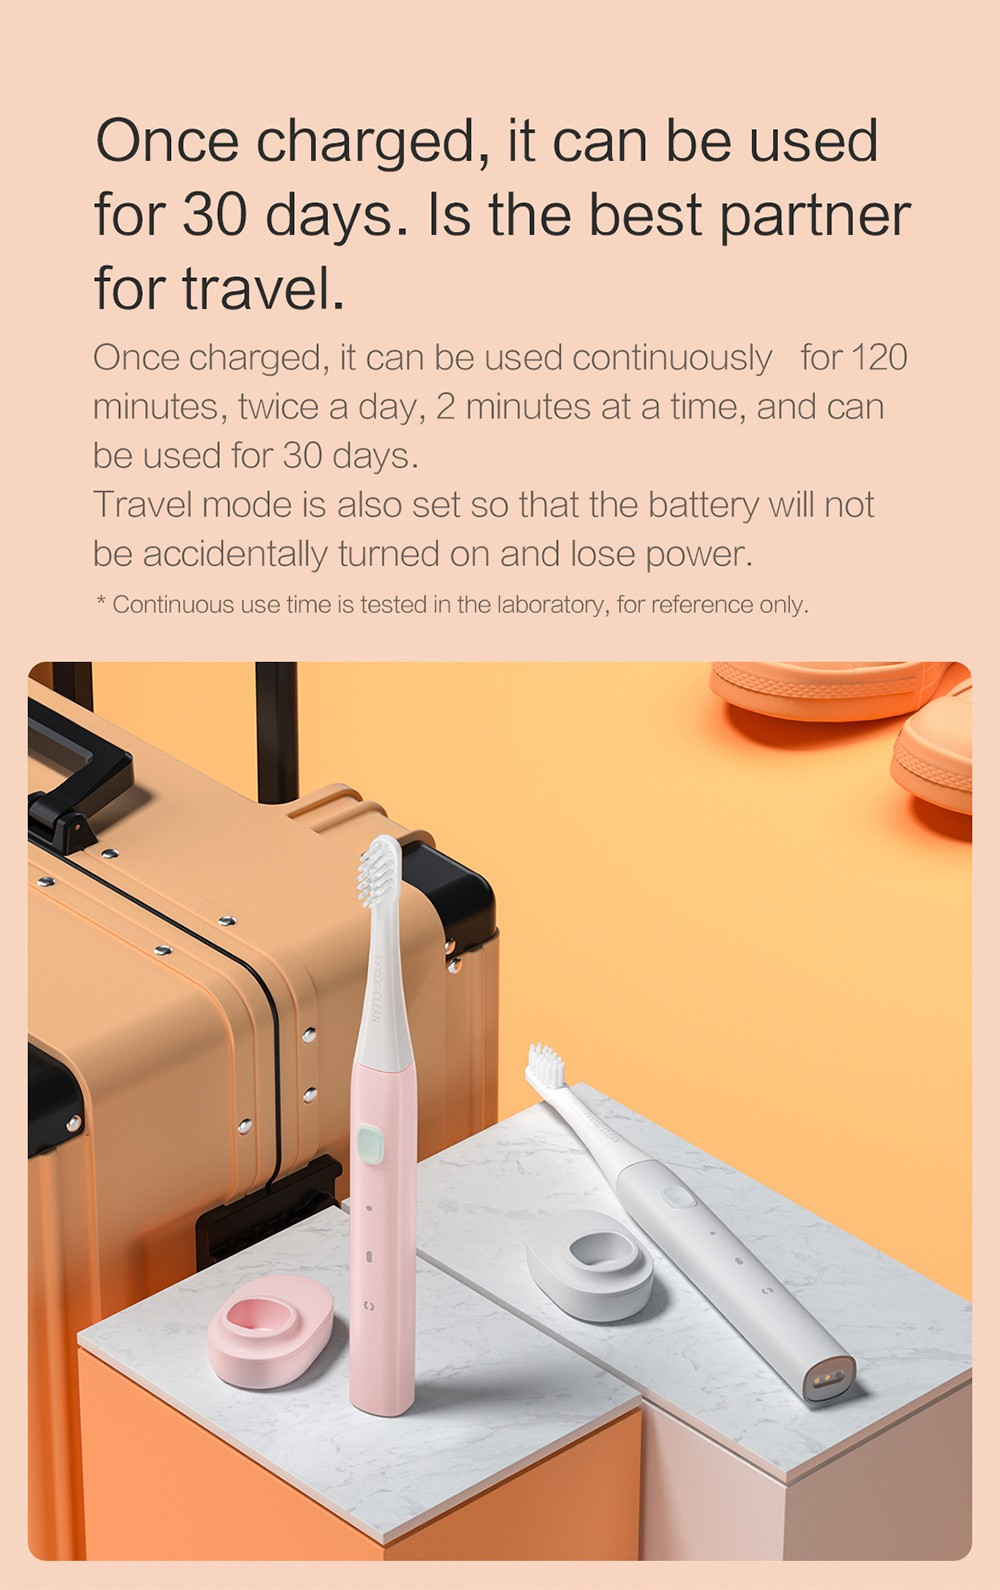 PT01 Electric Toothbrush Once charged, it can be used for 30 days. It is the best partner or travel